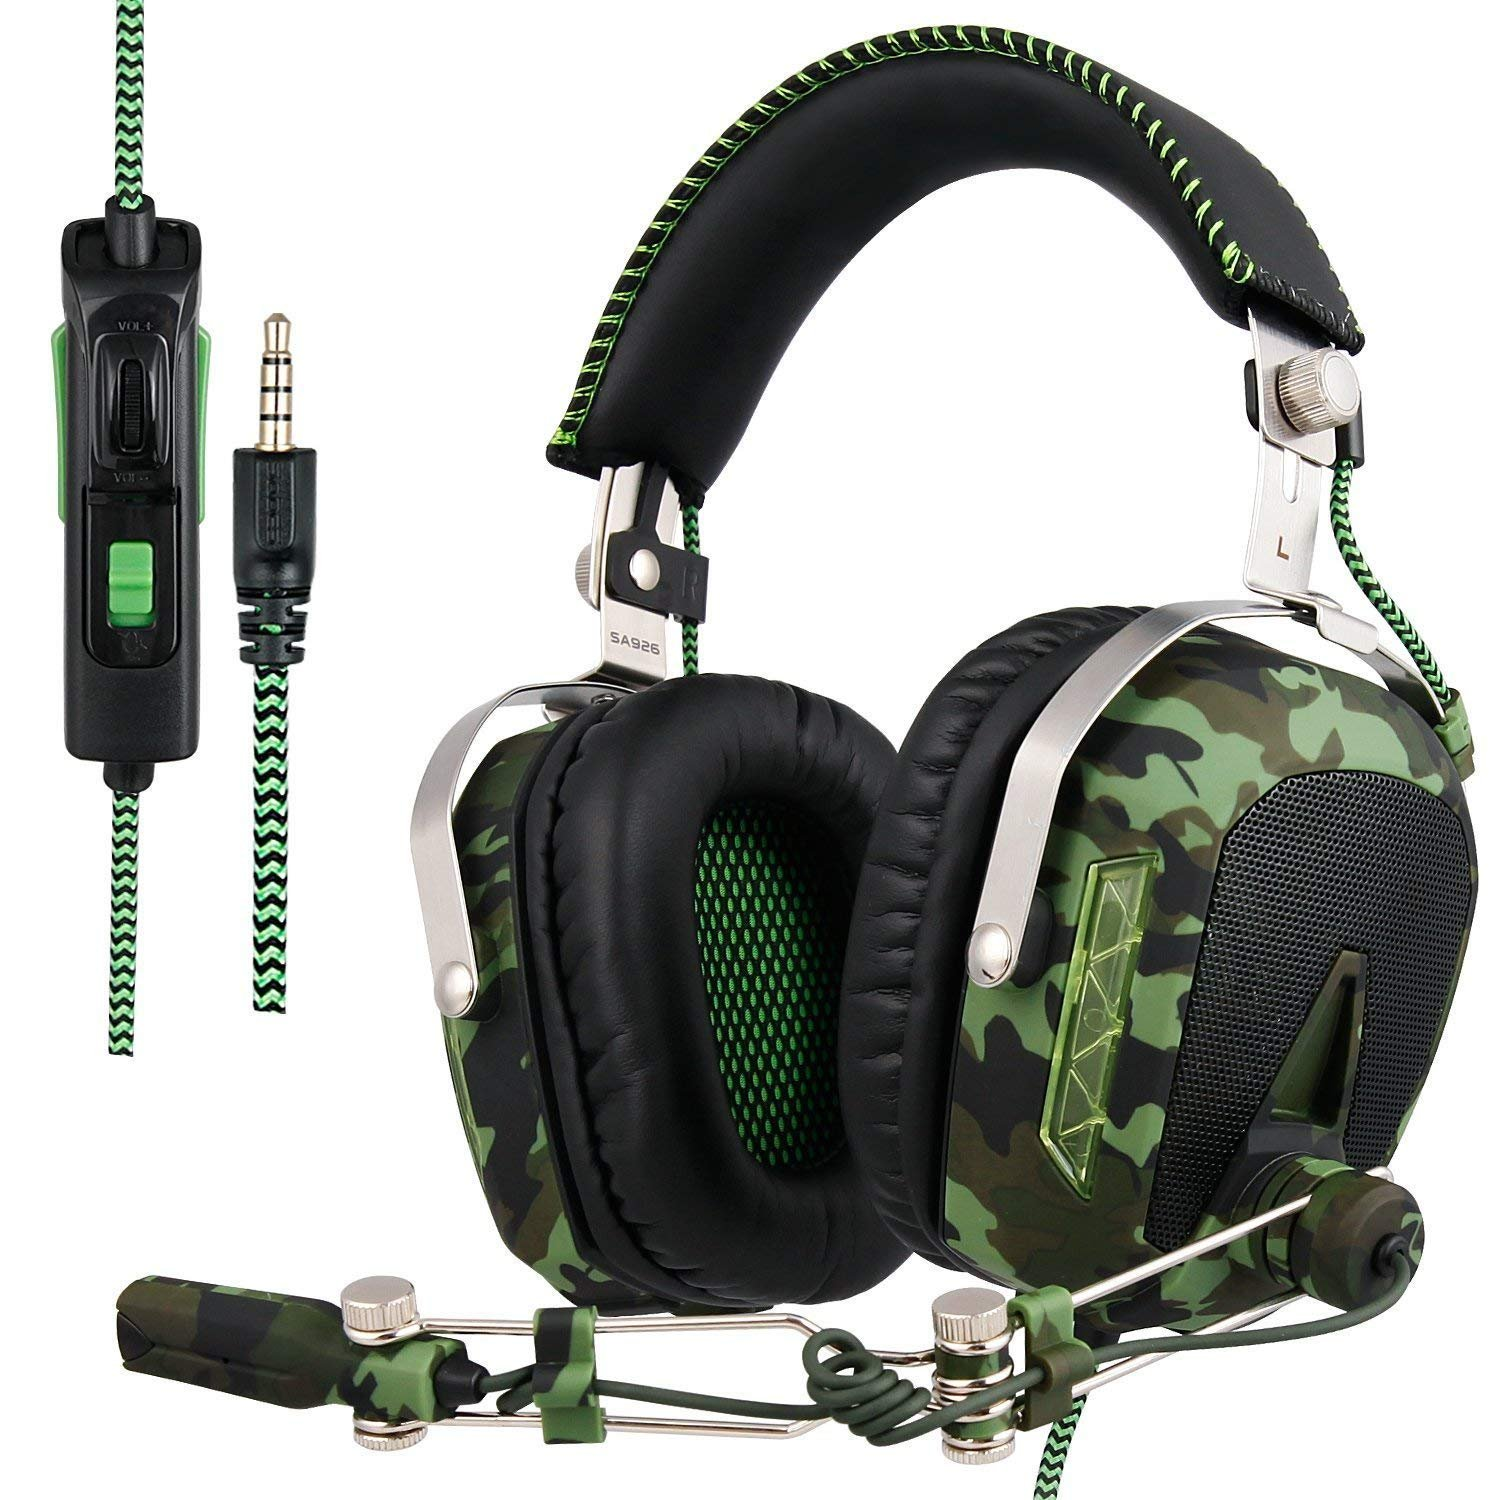 SADES SA926T Stereo Gaming Headset fü r PS4 Neue Xbox One, Bass Over-Ear Kopfhö rer mit Mikrofon und Inline-Lautstä rkeregler fü r Laptop, PC, Mac, iPad, Computer, Smartphones (Tarnung) Shenzhen Xinshengda Digital Technology Co. Ltd